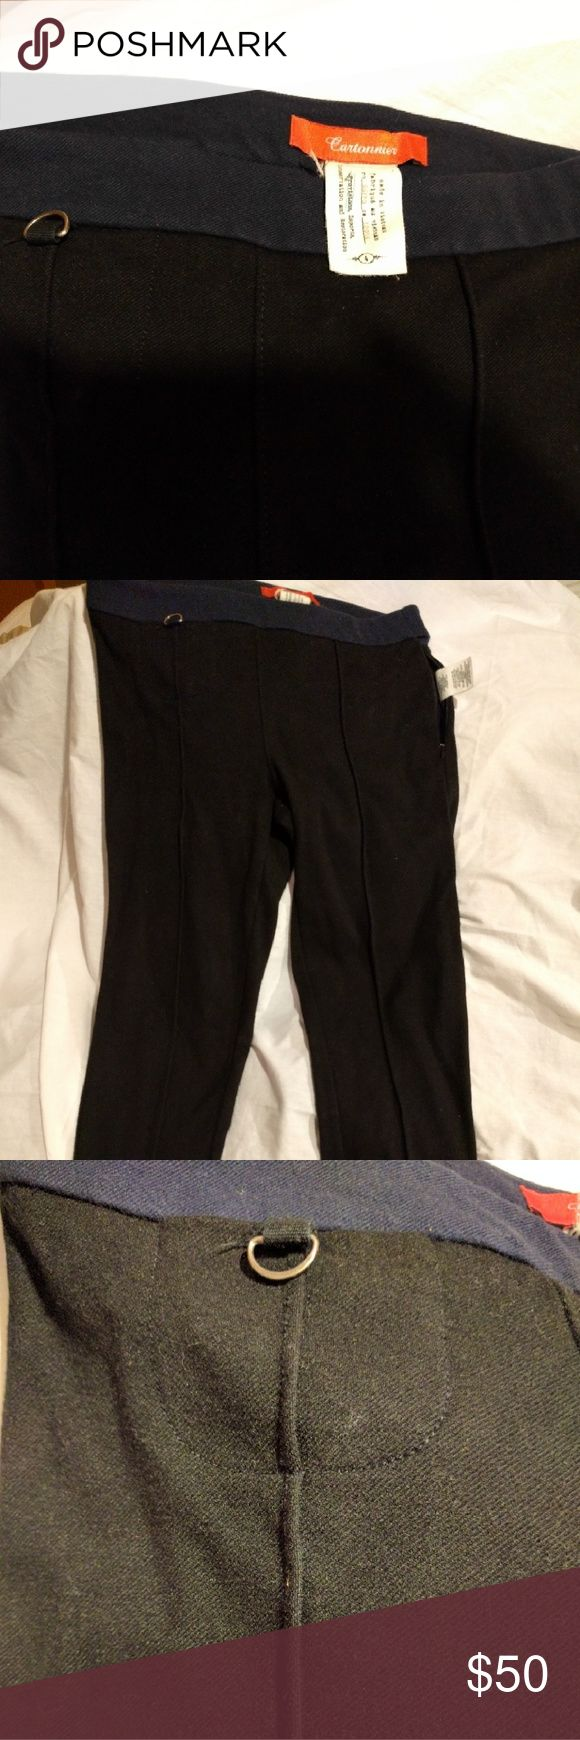 """Anthropologie Cartonnier Legging Riding Pants Skinny stretch leggings that have the thickness and feel of riding pants. Navy waistband, side zip, decorative seam on front of legs. I Little pocket with tiny metal D ring embellishment. Amazing pants, comfortable, chic, make your ass look great! 28"""" inseam Anthropologie Pants Leggings"""